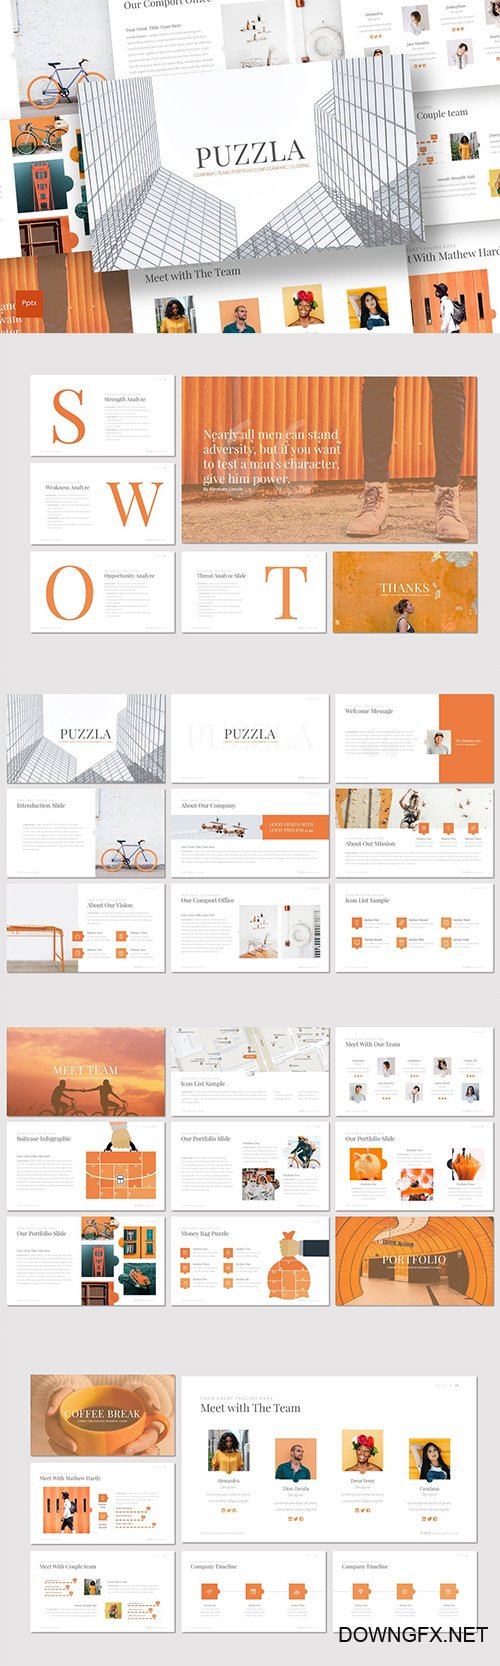 Puzzla - Powerpoint Keynote and Google Slides Templates